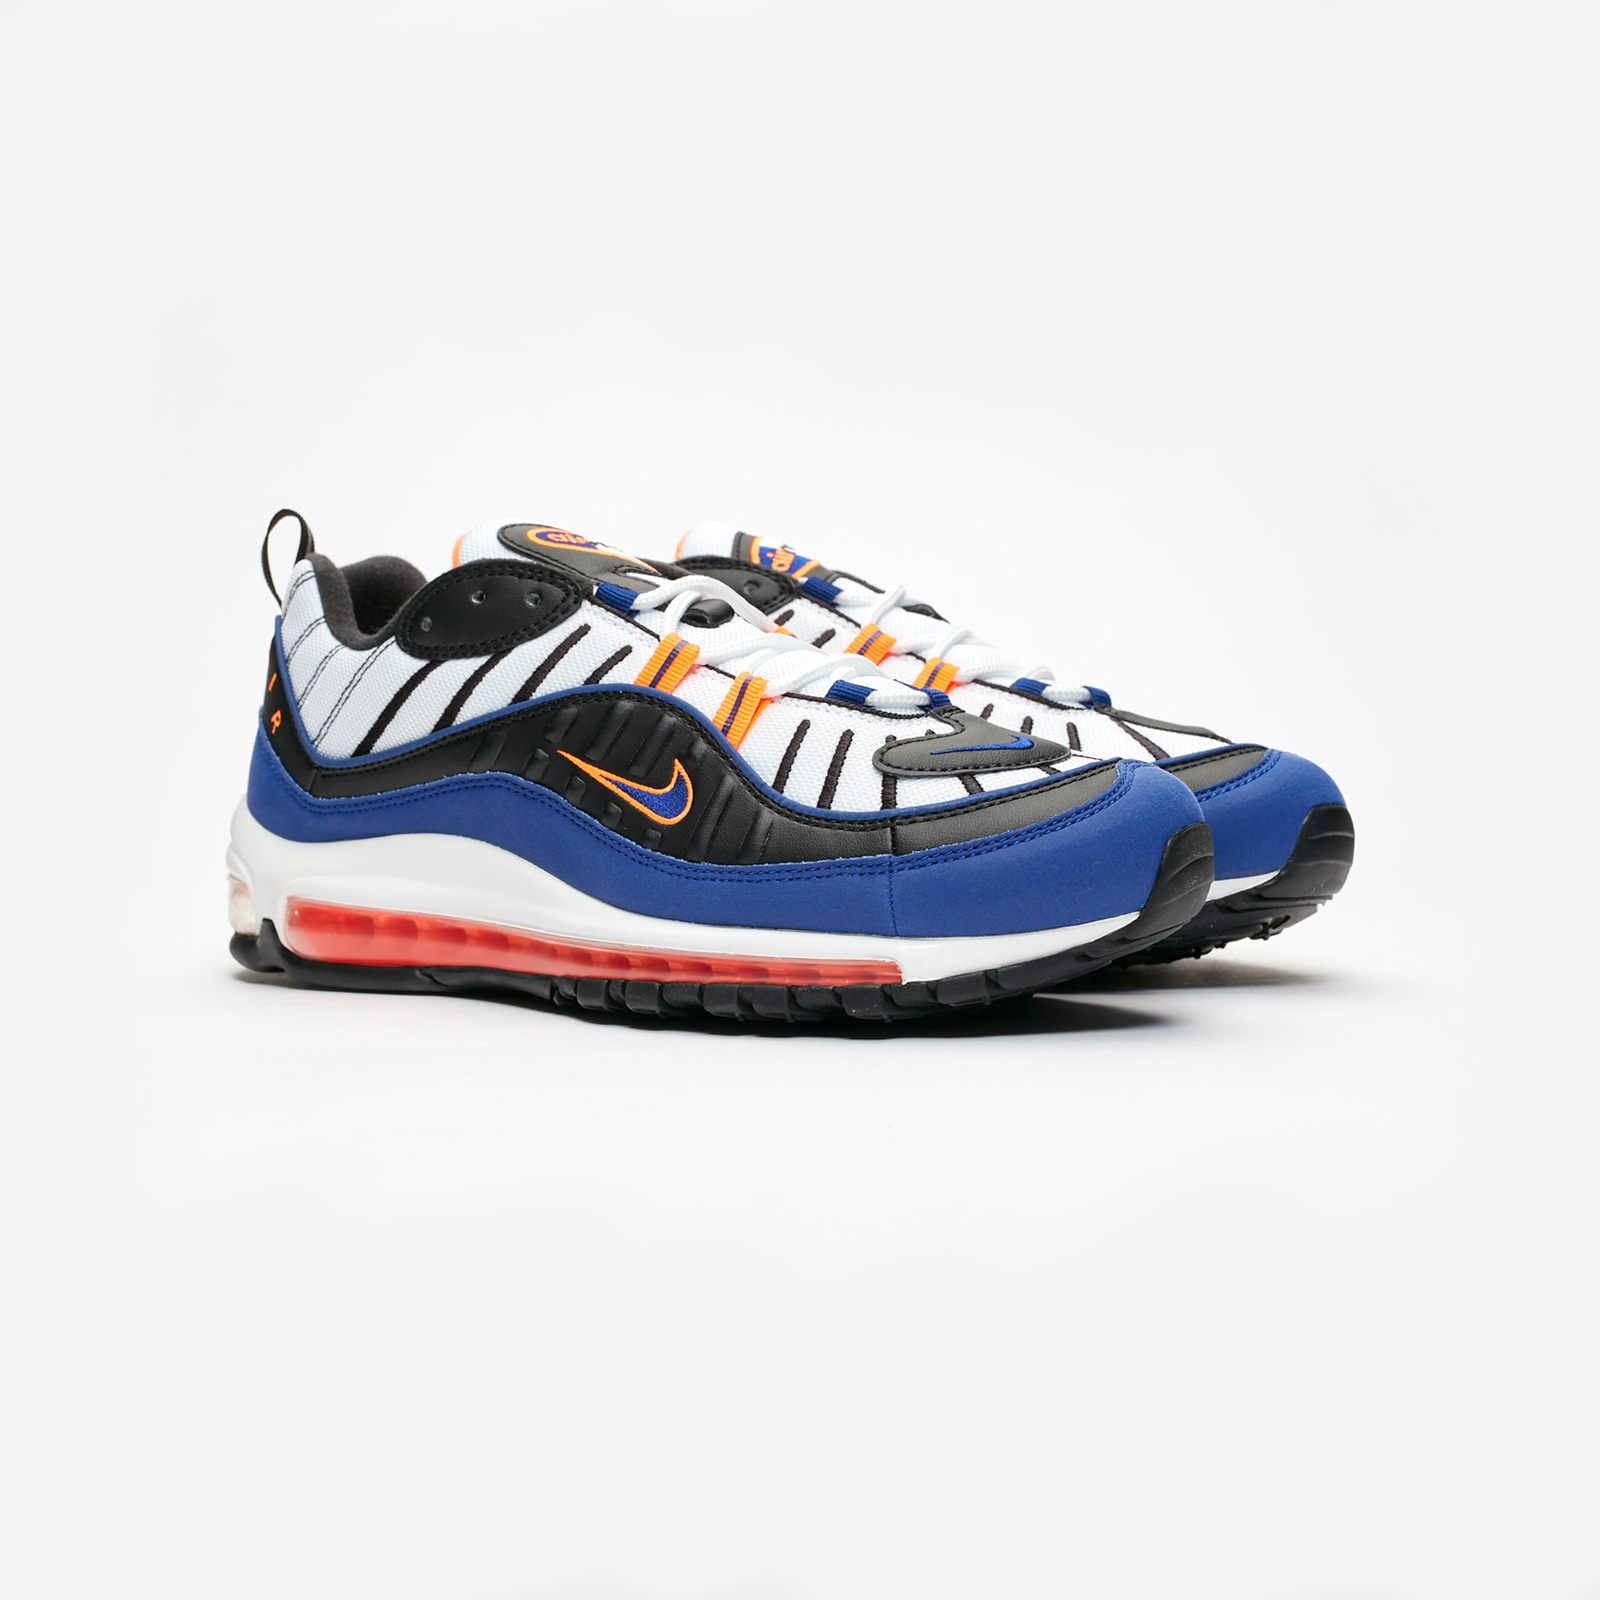 competitive price 285e8 feadd Nike Air Max 98 - Cd1536-100 - Sneakersnstuff | sneakers ...